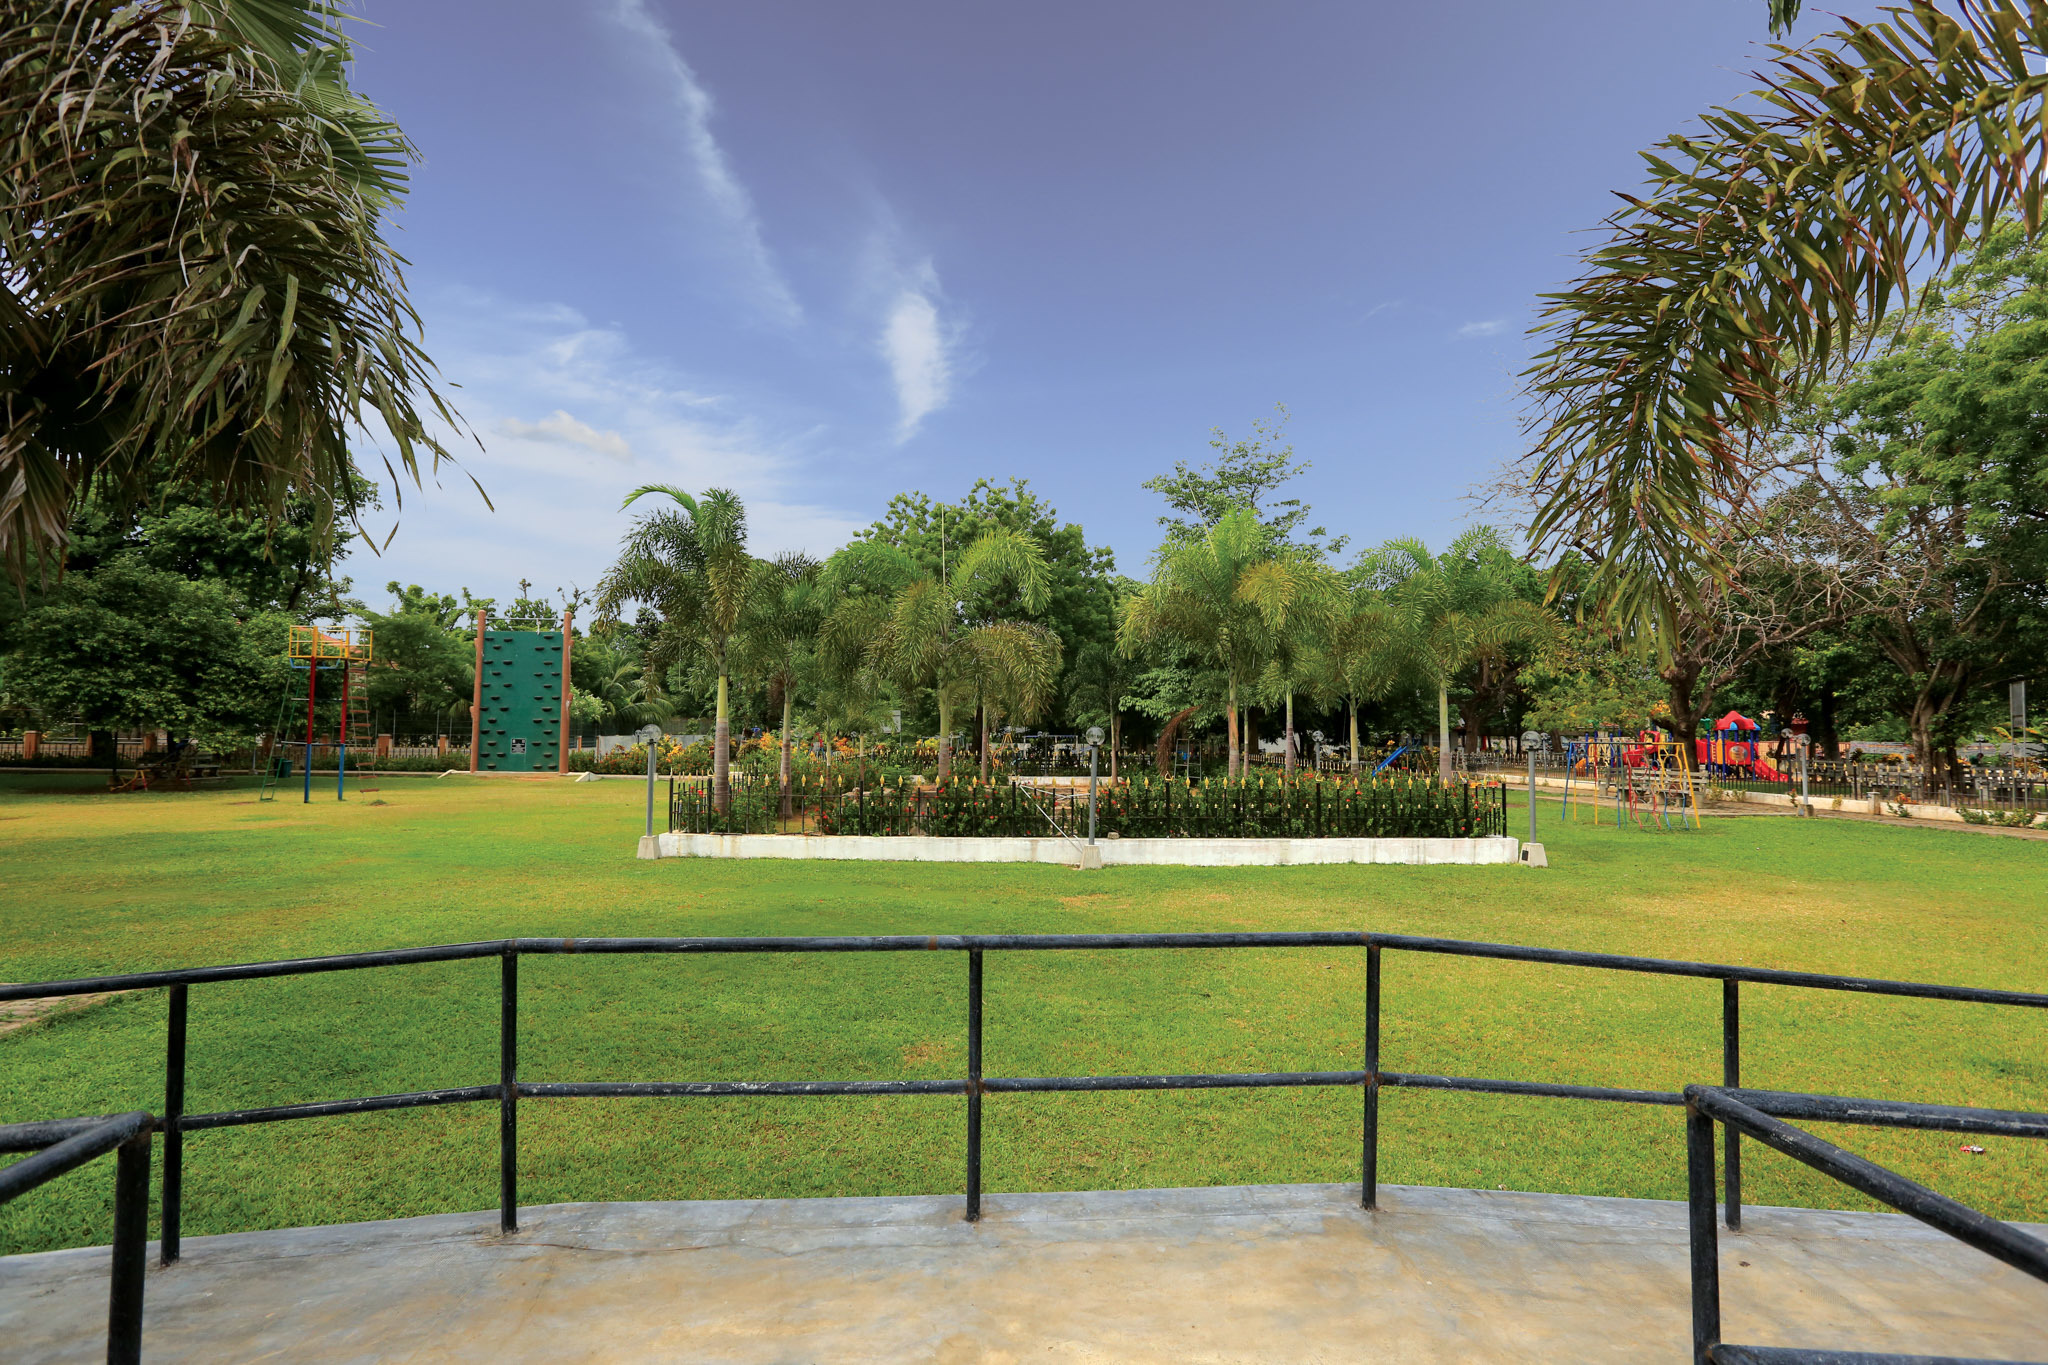 Enjoy an evening out at the children's park in Jaffna